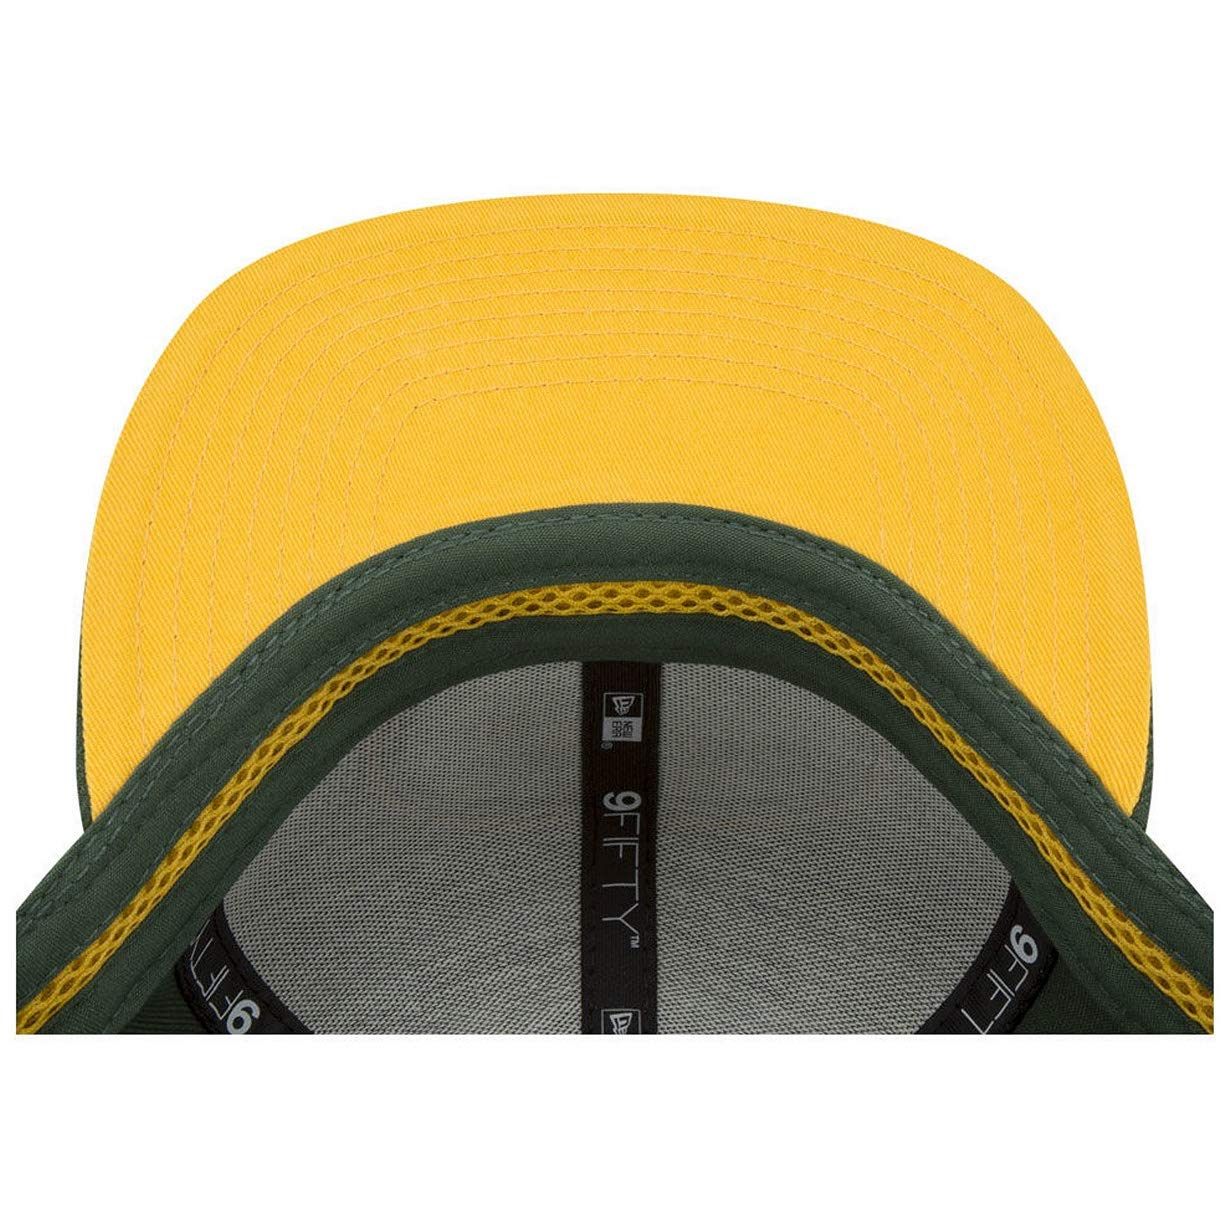 New Era NFL Green Bay Packers 9FIFTY Meshed Mix Snapback Hat Adjustable Green Hat